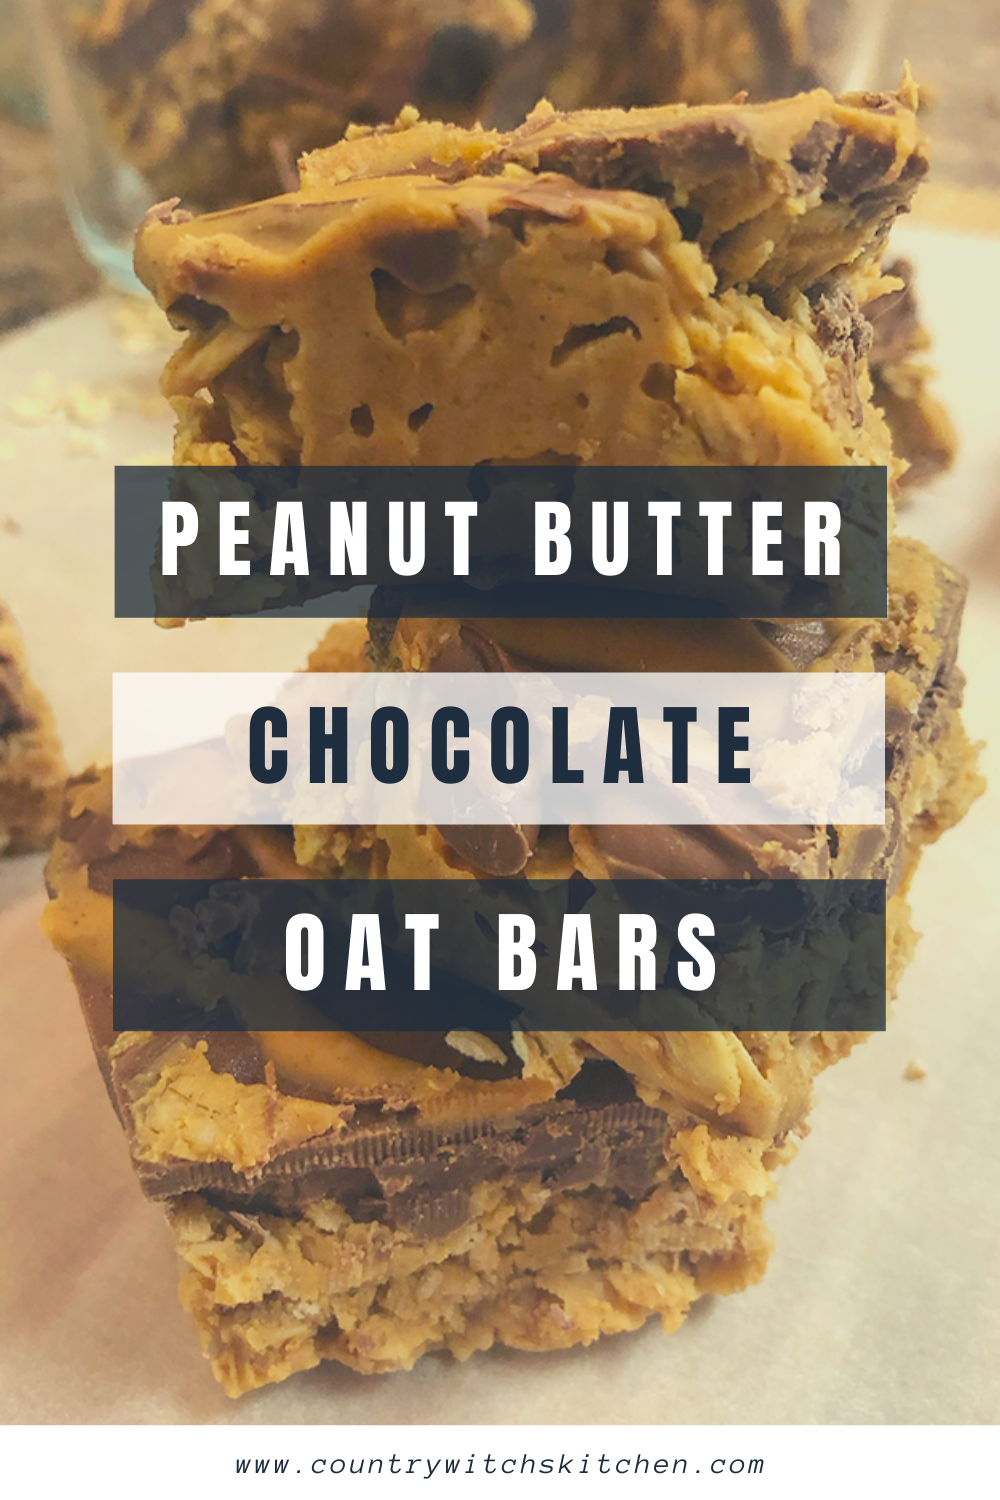 Peanut butter chocolate oat bars are a delicious treat for breakfast, afterschool, or any other time of day! #peanutbutter #oatbars #oatmealbars #breakfast